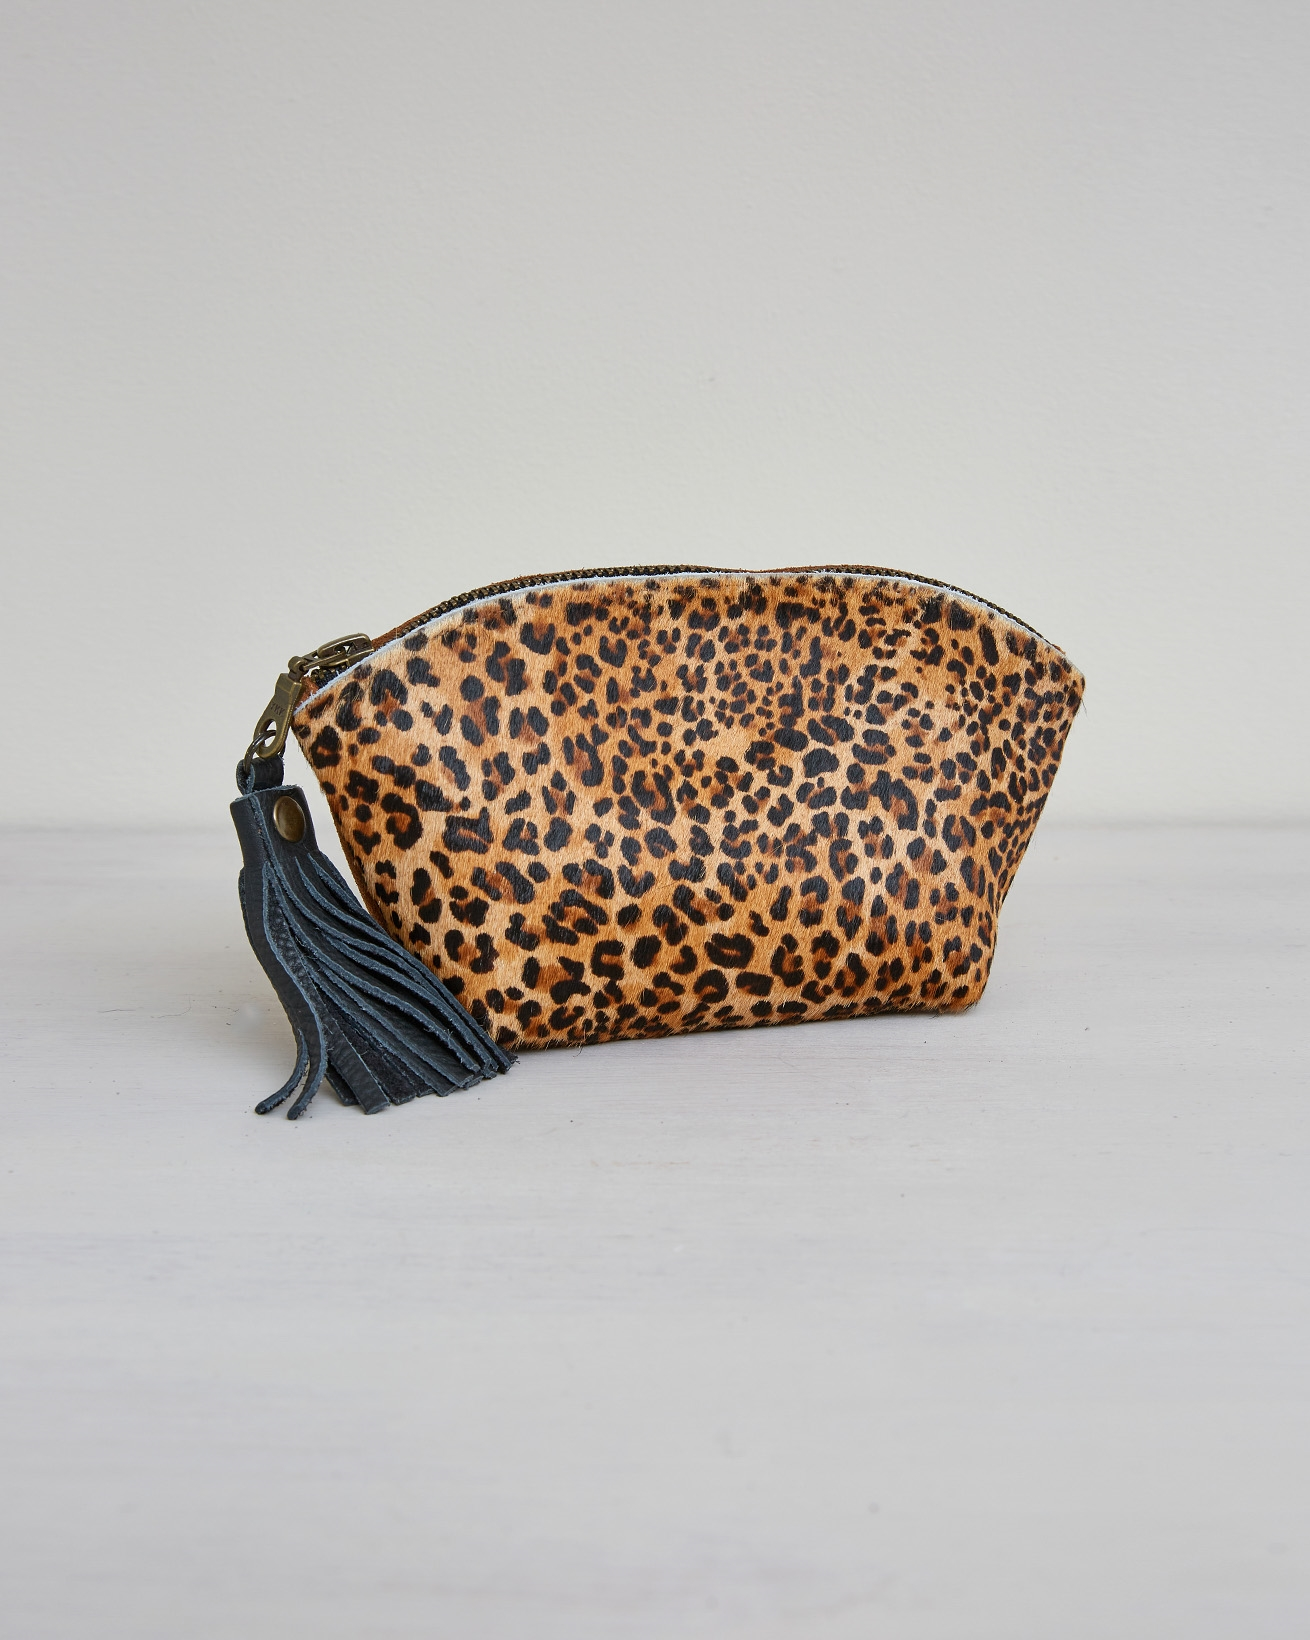 Cosmetics Pouch Bag Tidy - One/Size -  Leopard - 2420